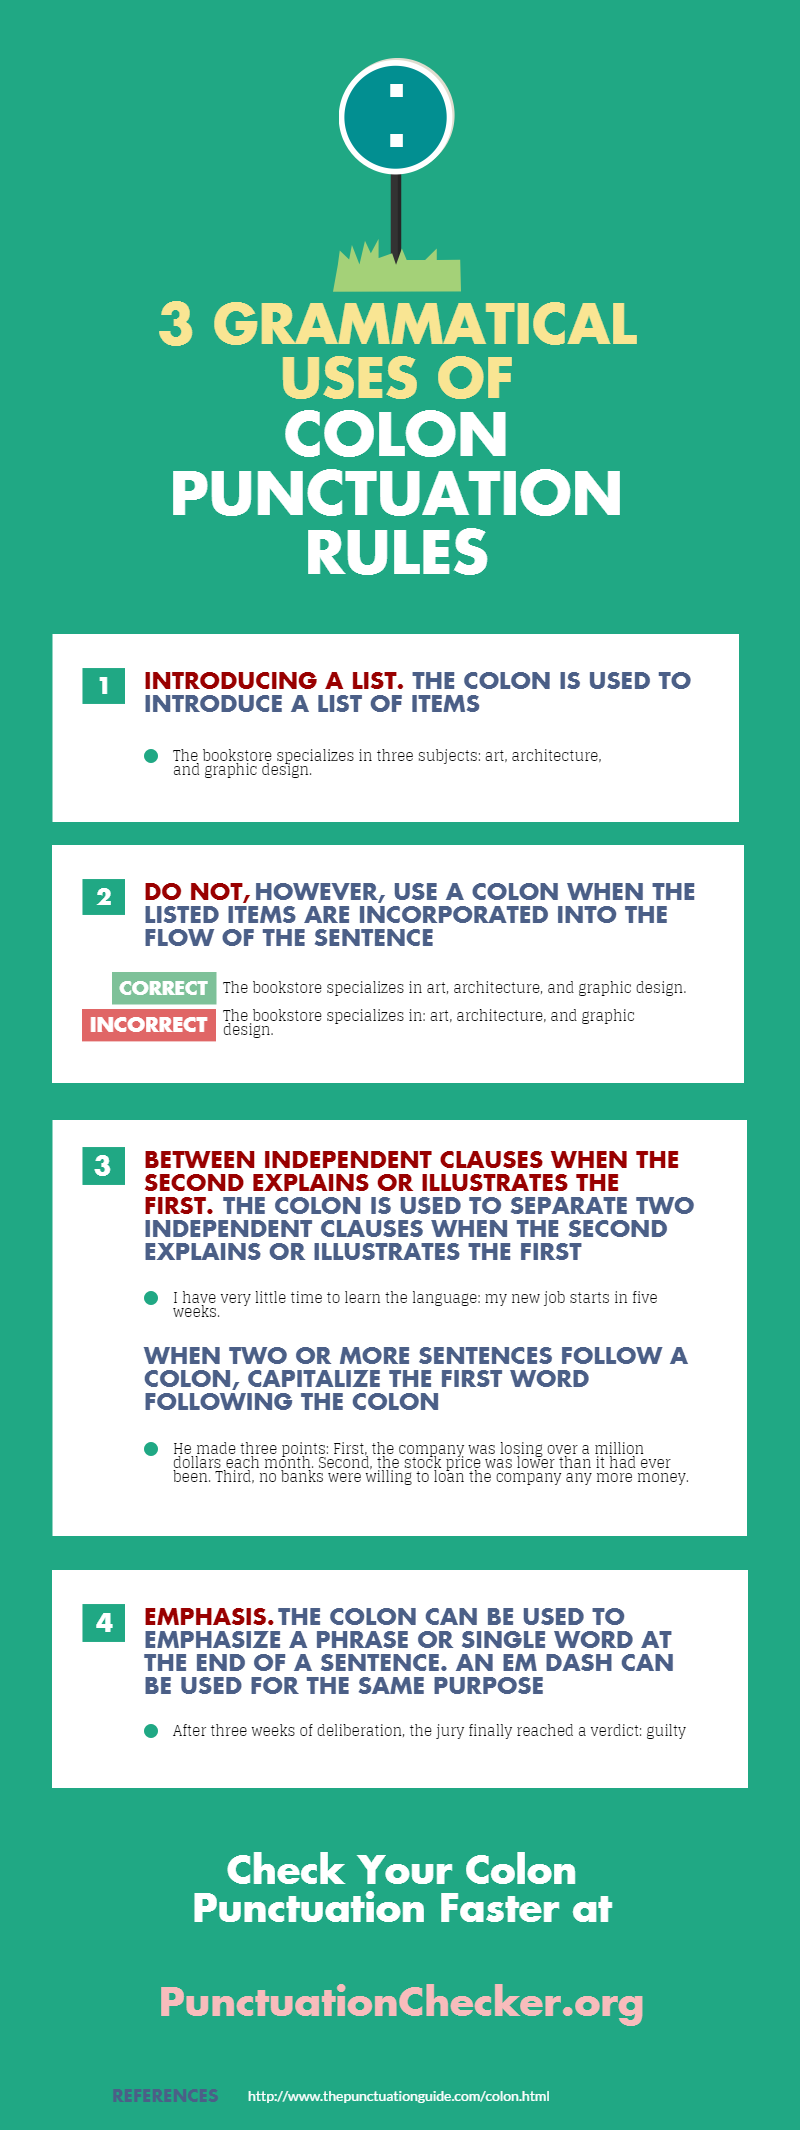 3 grammatical uses of colon punctuation rules